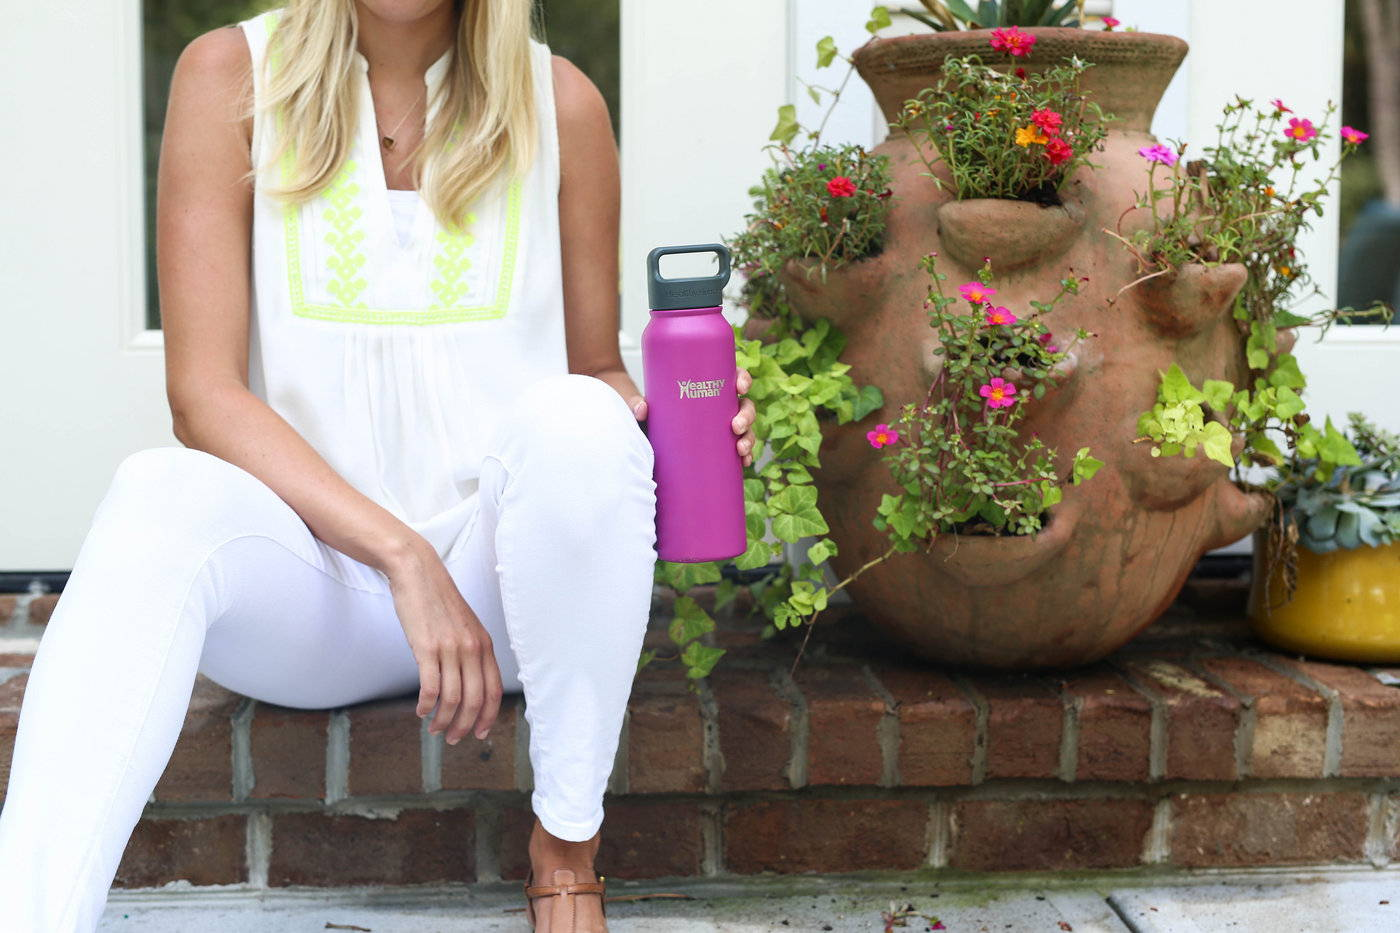 Woman holding a Healthy Human Stein water bottle next to a terra cotta planter